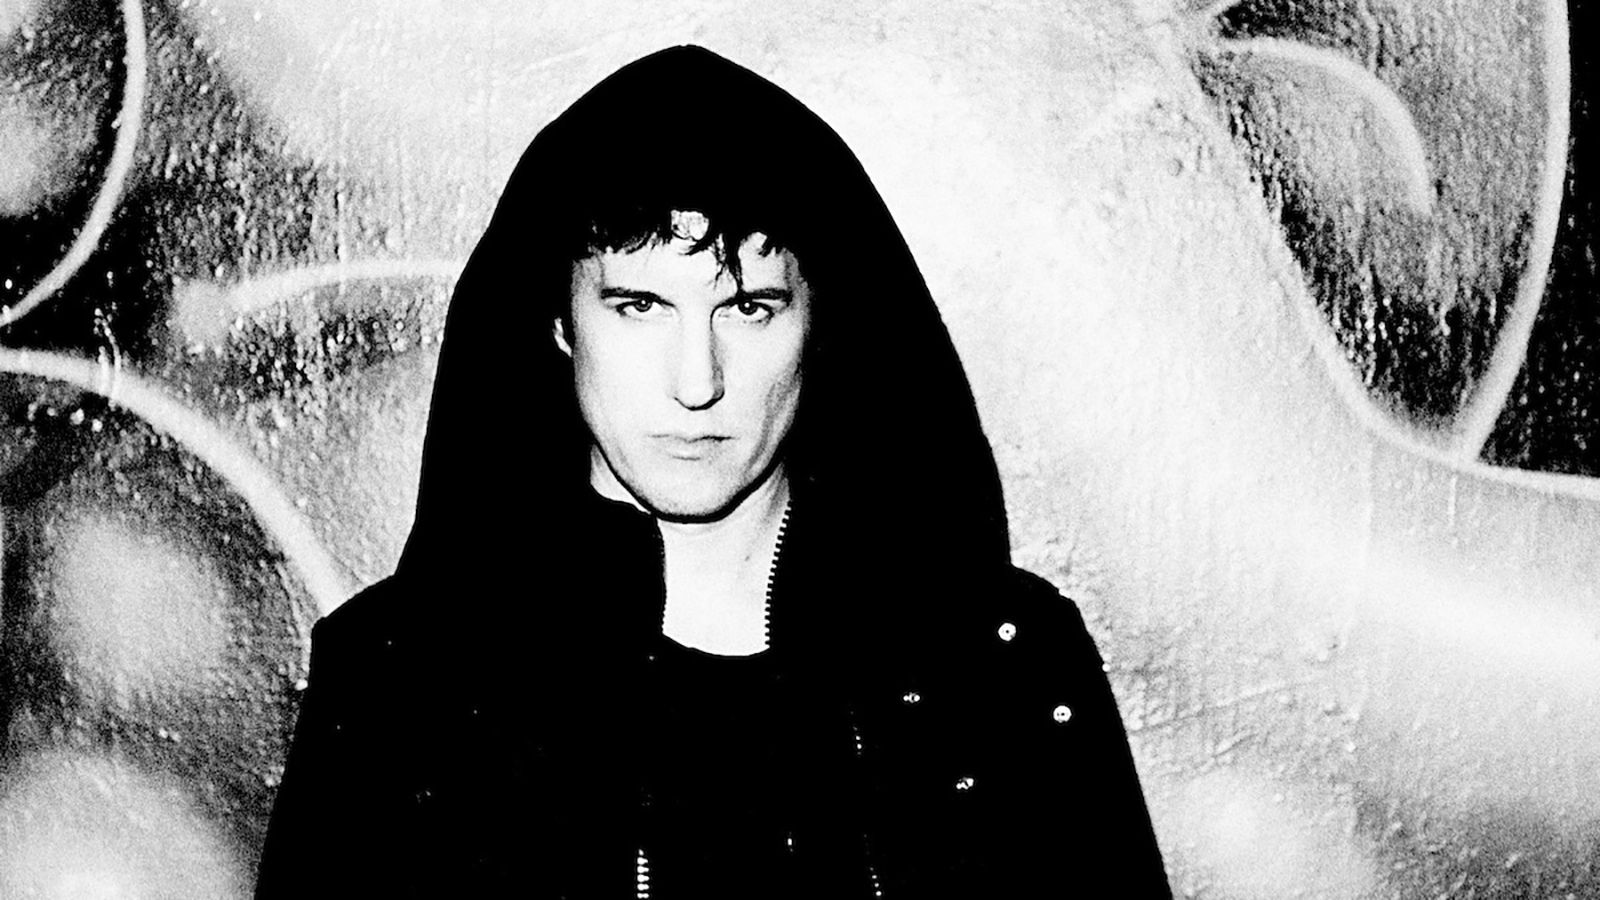 Alec Empire (Atari Teenage Riot)